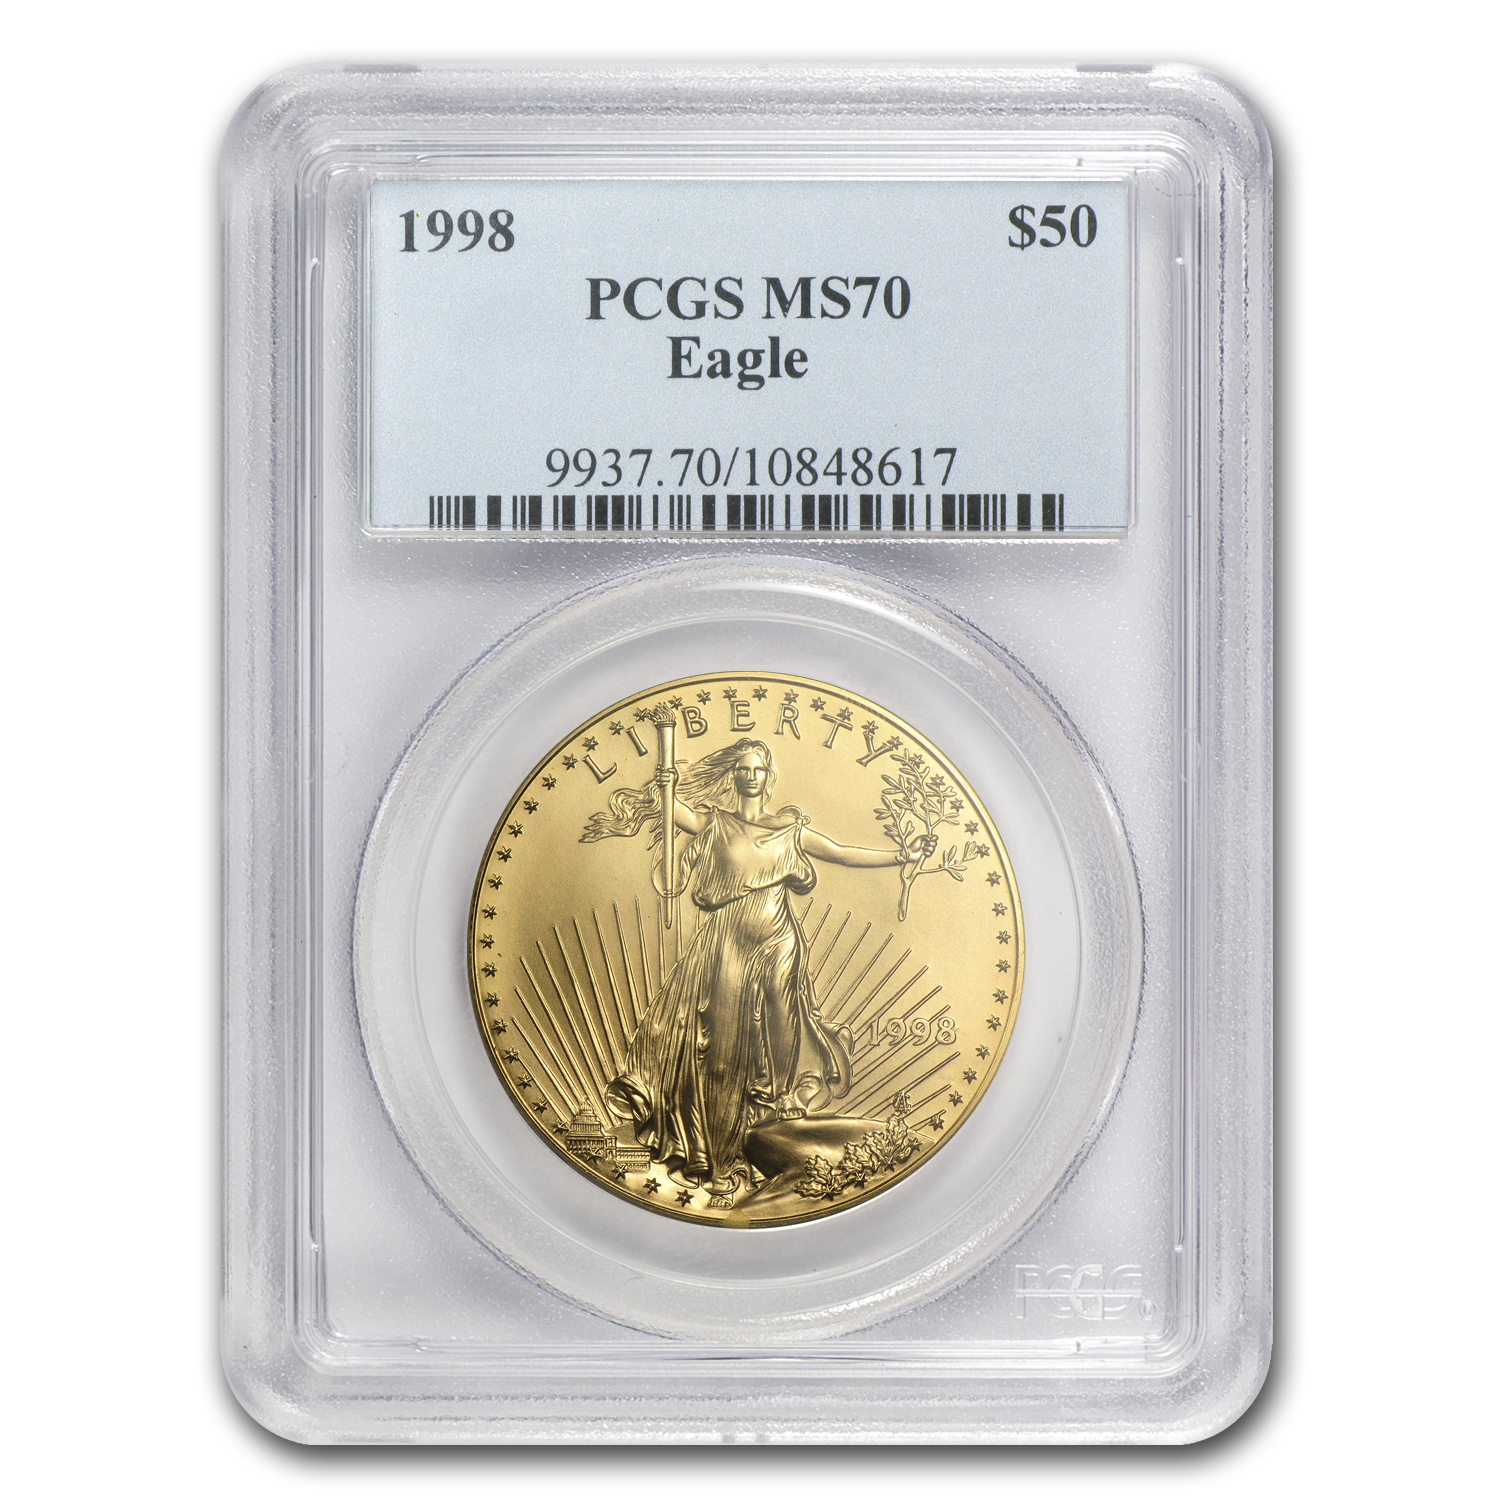 1998 1 oz Gold American Eagle MS-70 PCGS (Registry Coin)